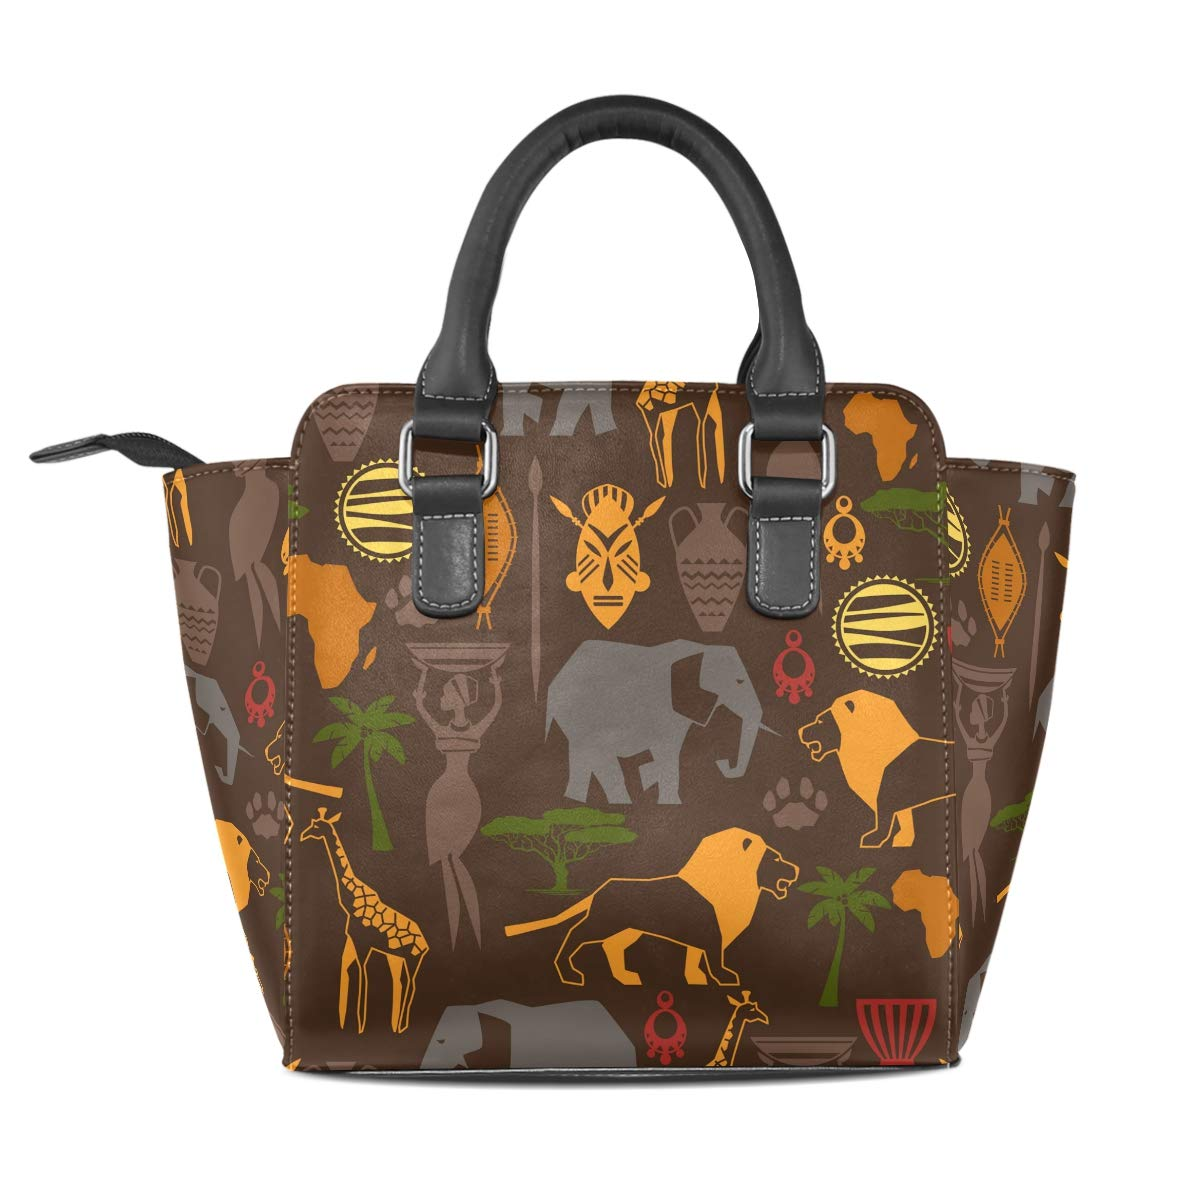 7a37a8fa35c5 Amazon.com: LORVIES Women African Ethnic Pattern With Stylized Icons PU Leather  Shoulder Bags Top-Handle Handbag Tote Crossbody Bag: Shoes